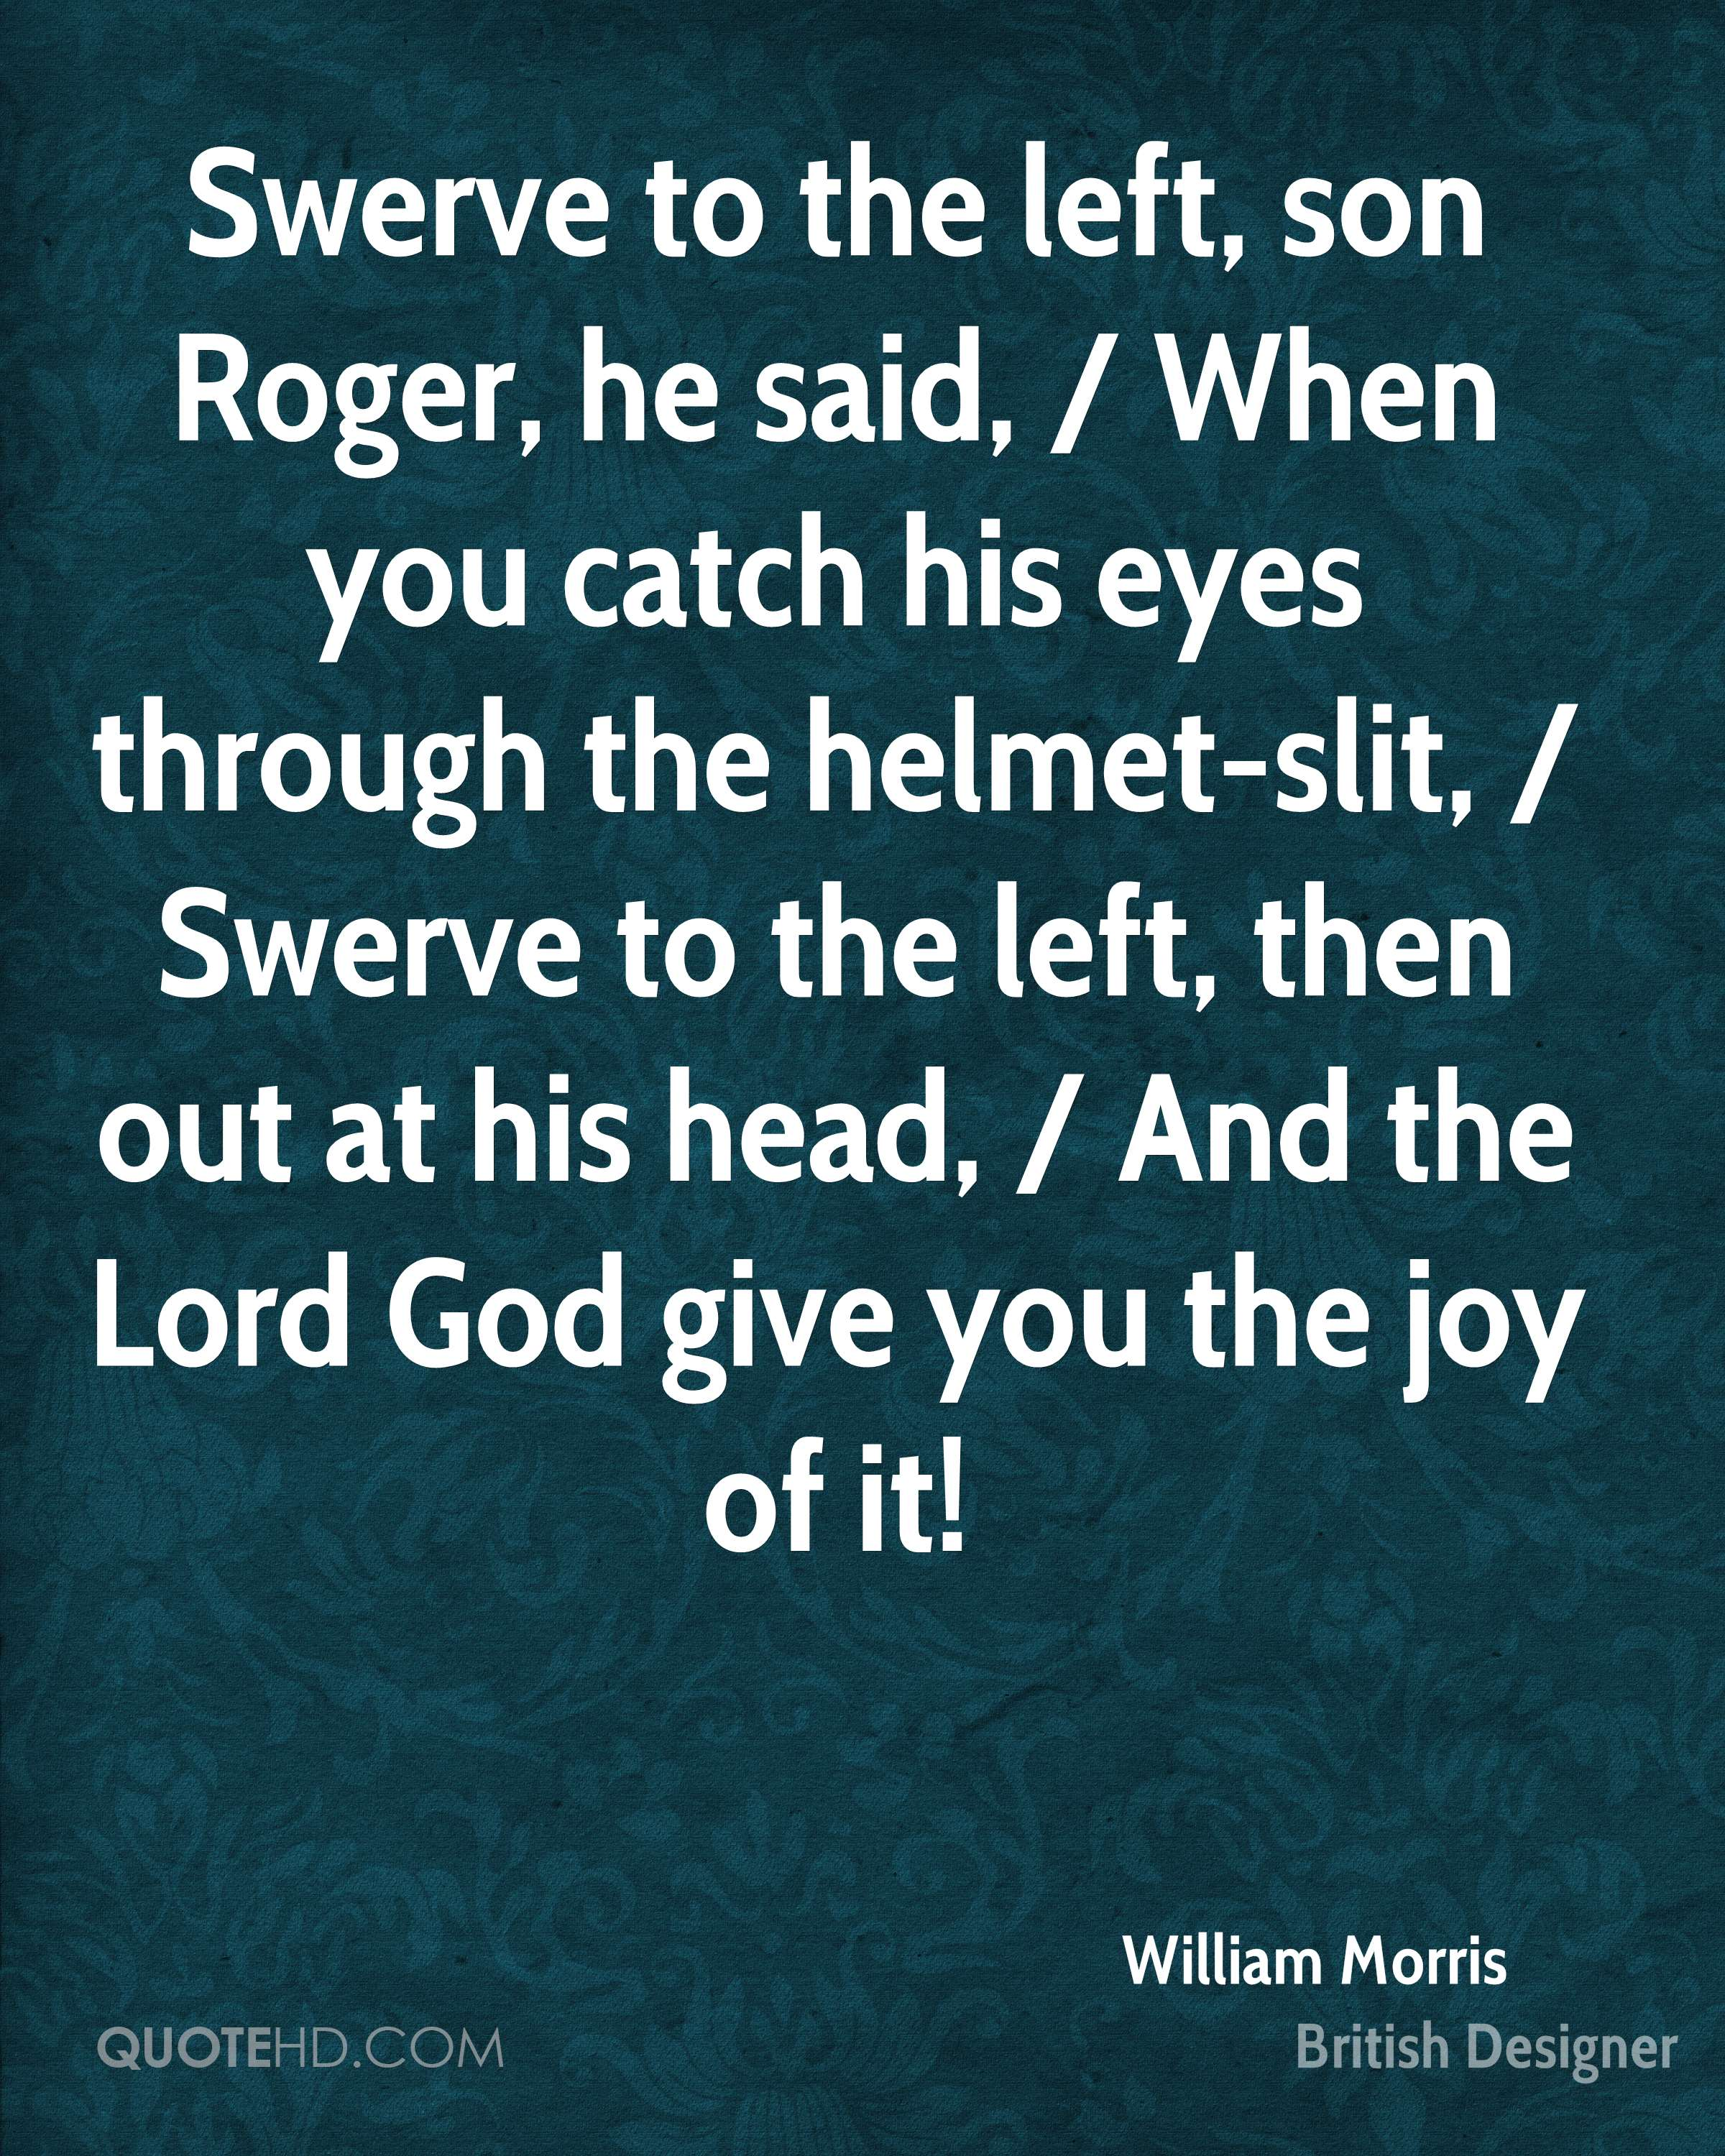 Swerve to the left, son Roger, he said, / When you catch his eyes through the helmet-slit, / Swerve to the left, then out at his head, / And the Lord God give you the joy of it!